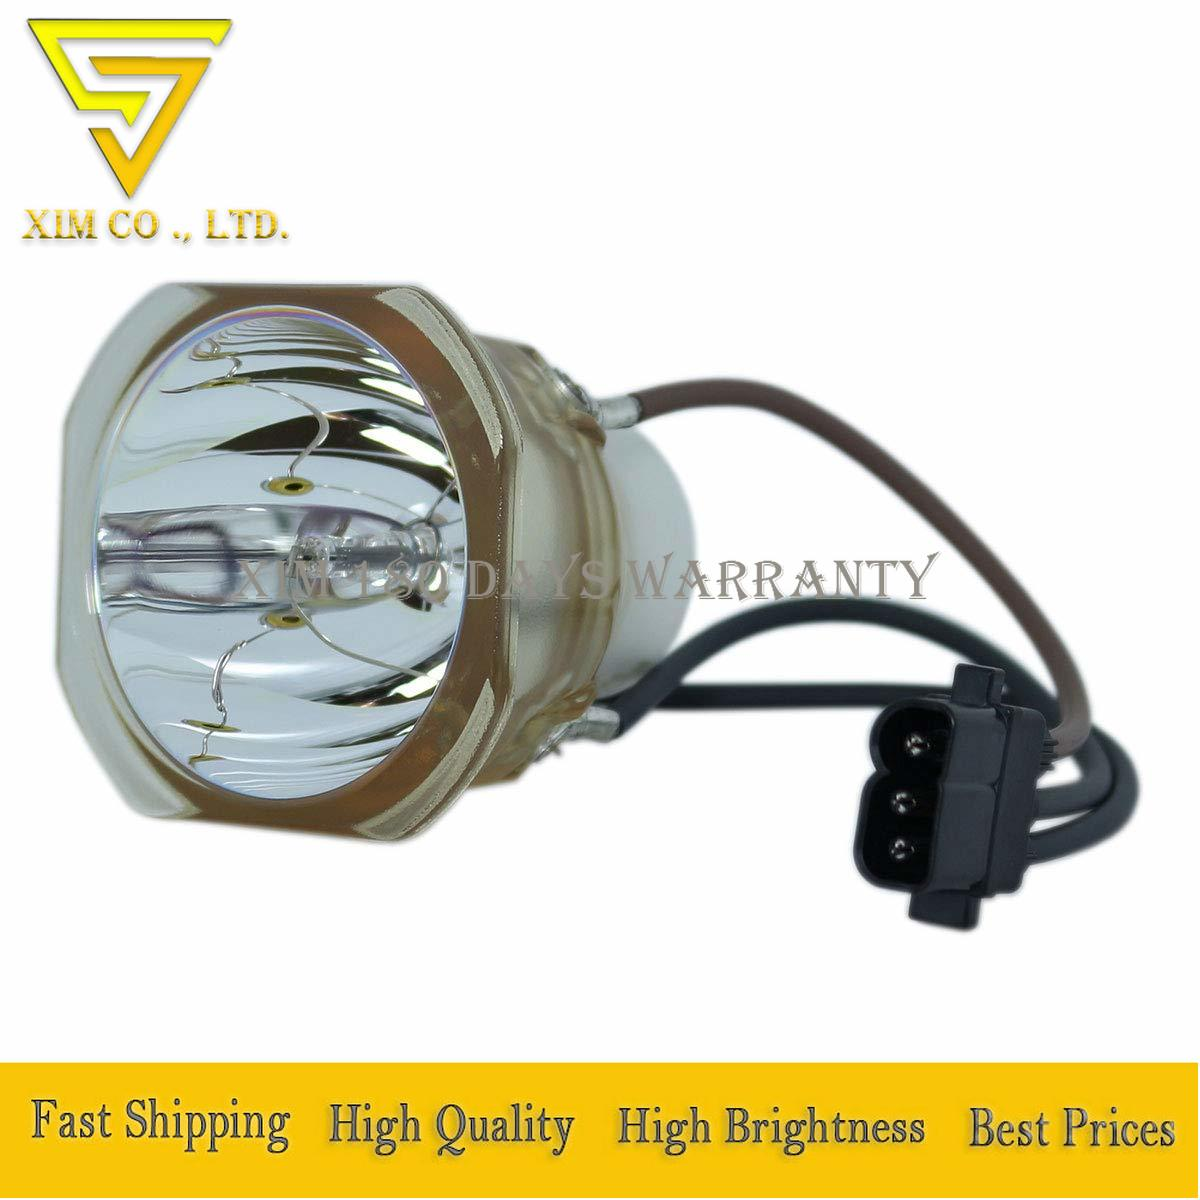 Projector Lamp Bulb AJ-LBX3A 6912B22008E AJ-LBX3 AJLBX3 AJLBX3A BX-277 BX-327 BX277 BX327 For LG Projector With 180 Day Warranty